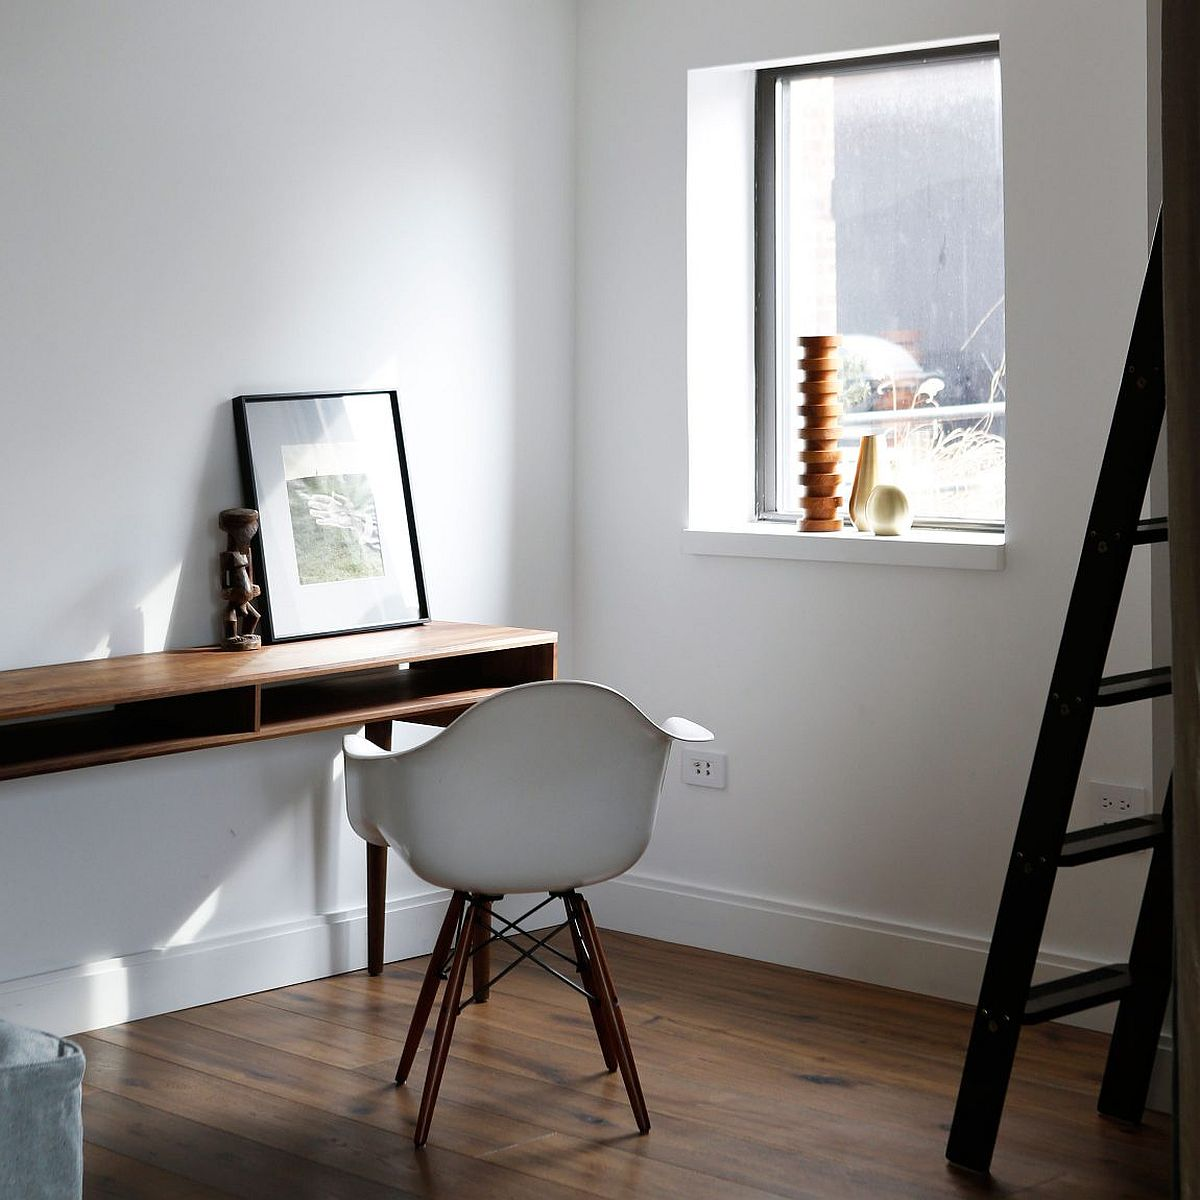 Home workspace with modern minimal style